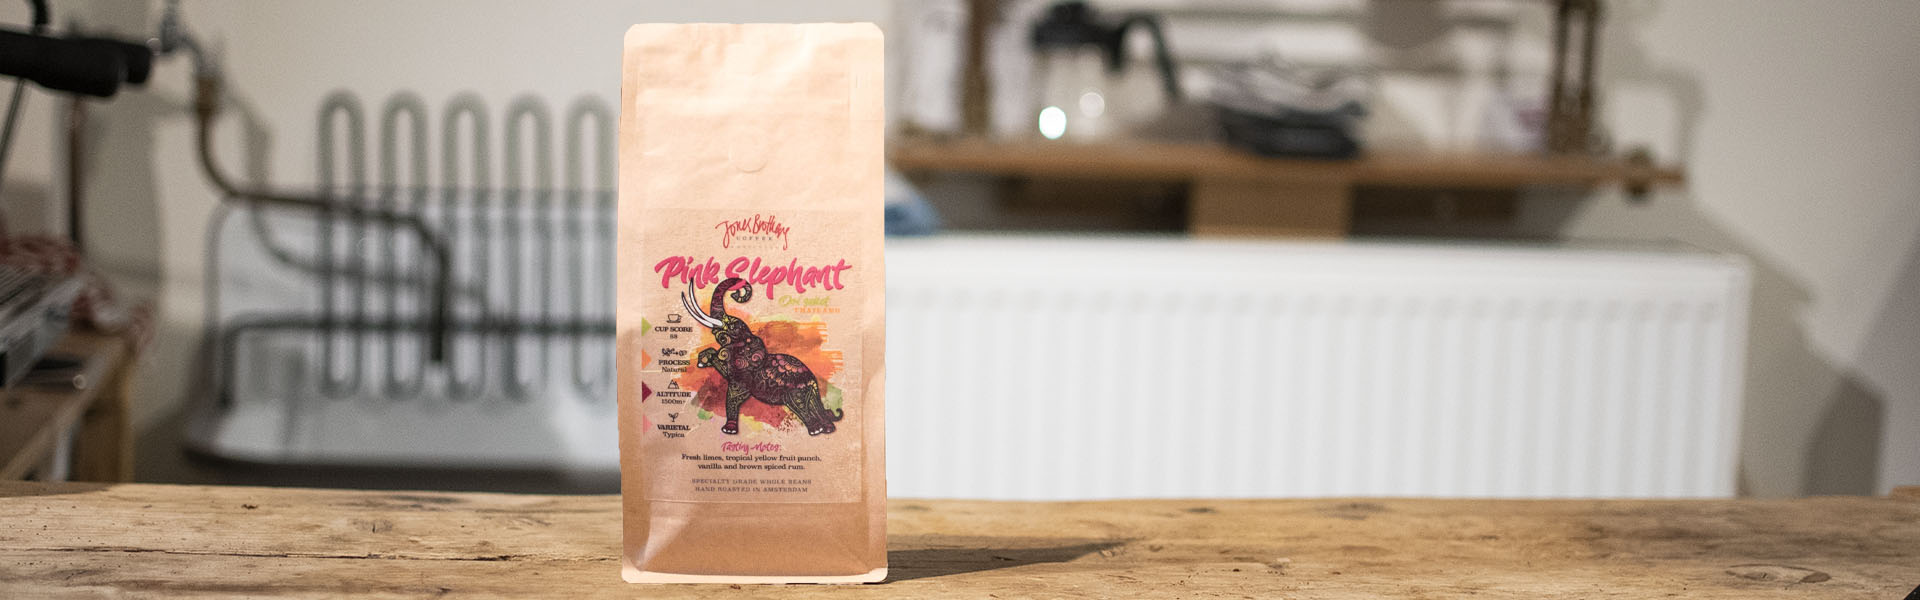 Pink Elephant Thailand specialty coffee